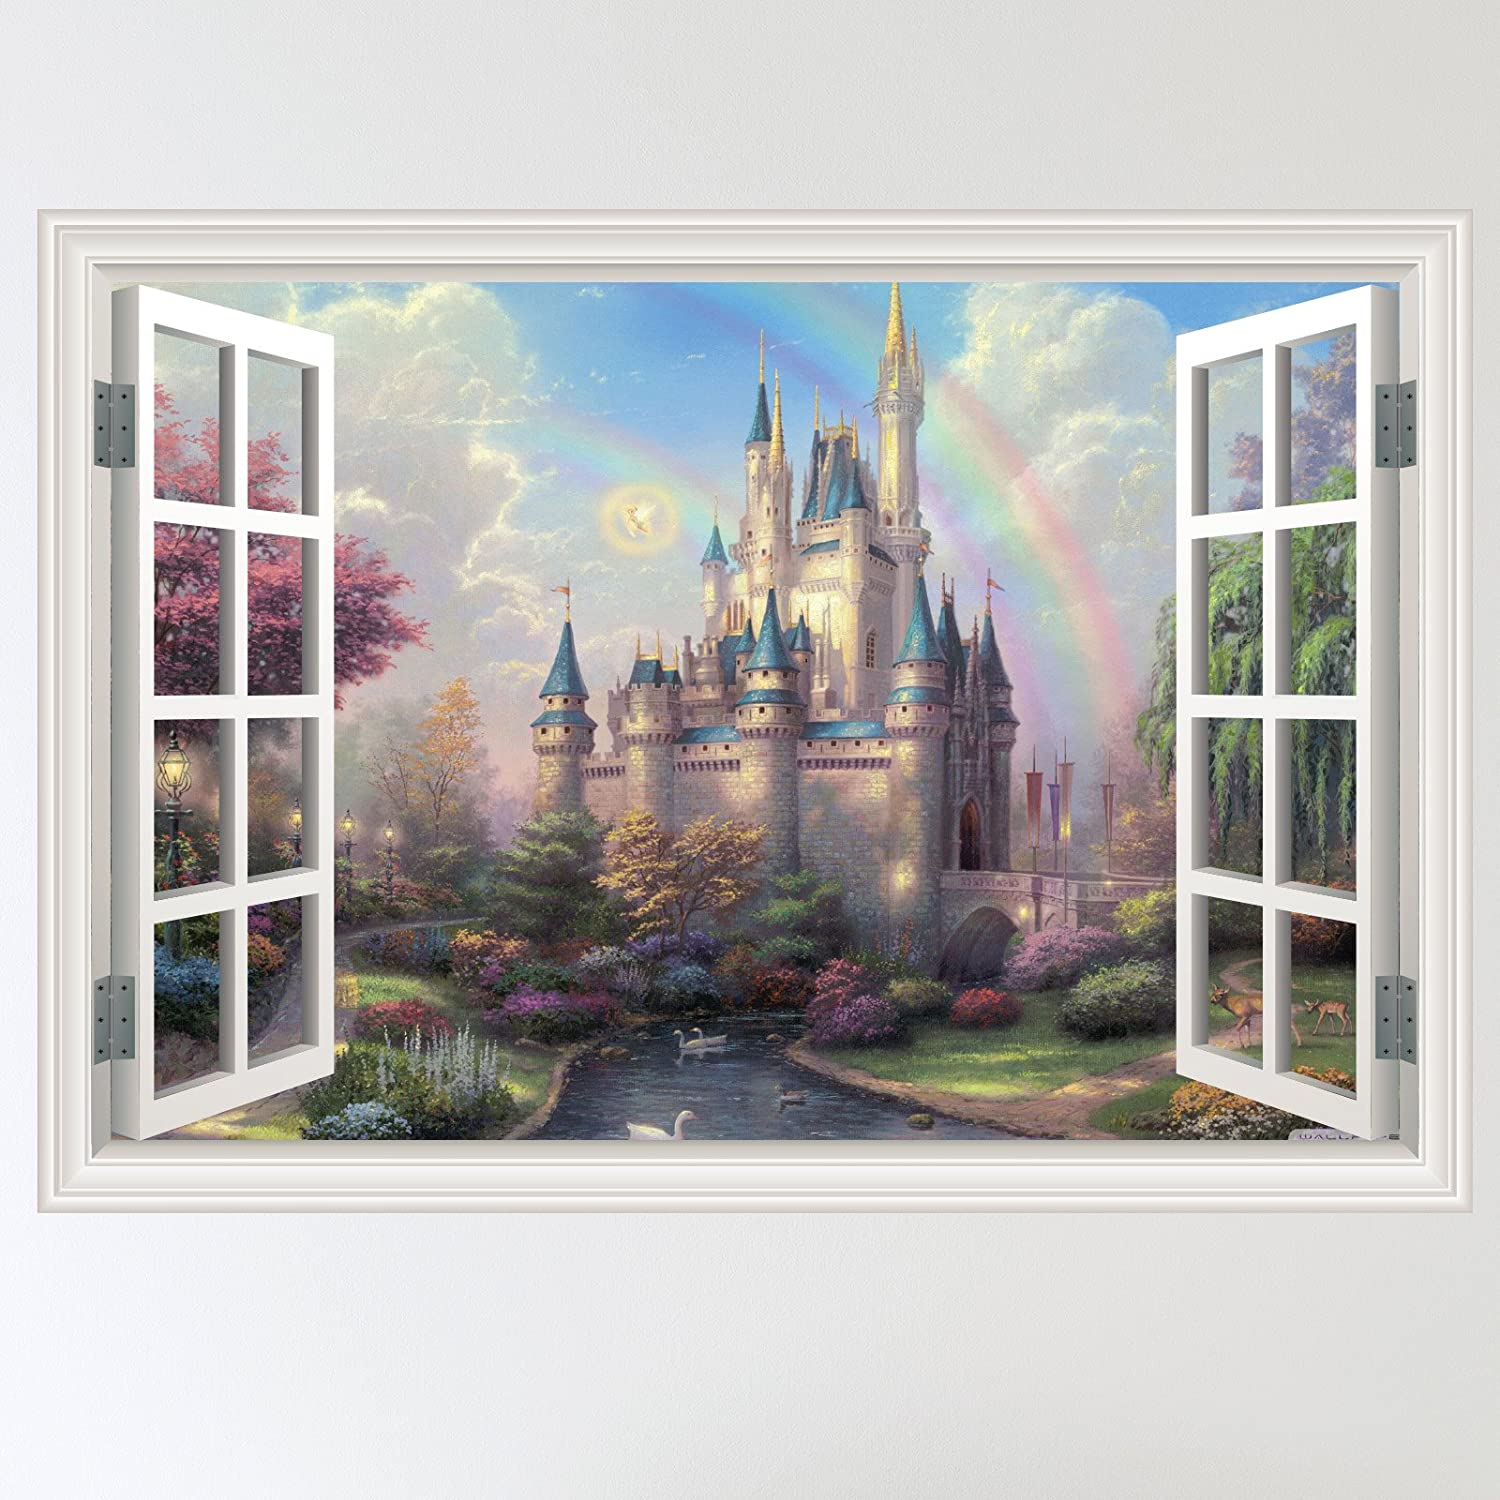 Full Colour Fairy Castle Mystical Window Scene Wall Sticker Decal Wall Art  Girls Room (W70xH49cm): Amazon.co.uk: Kitchen U0026 Home Part 59